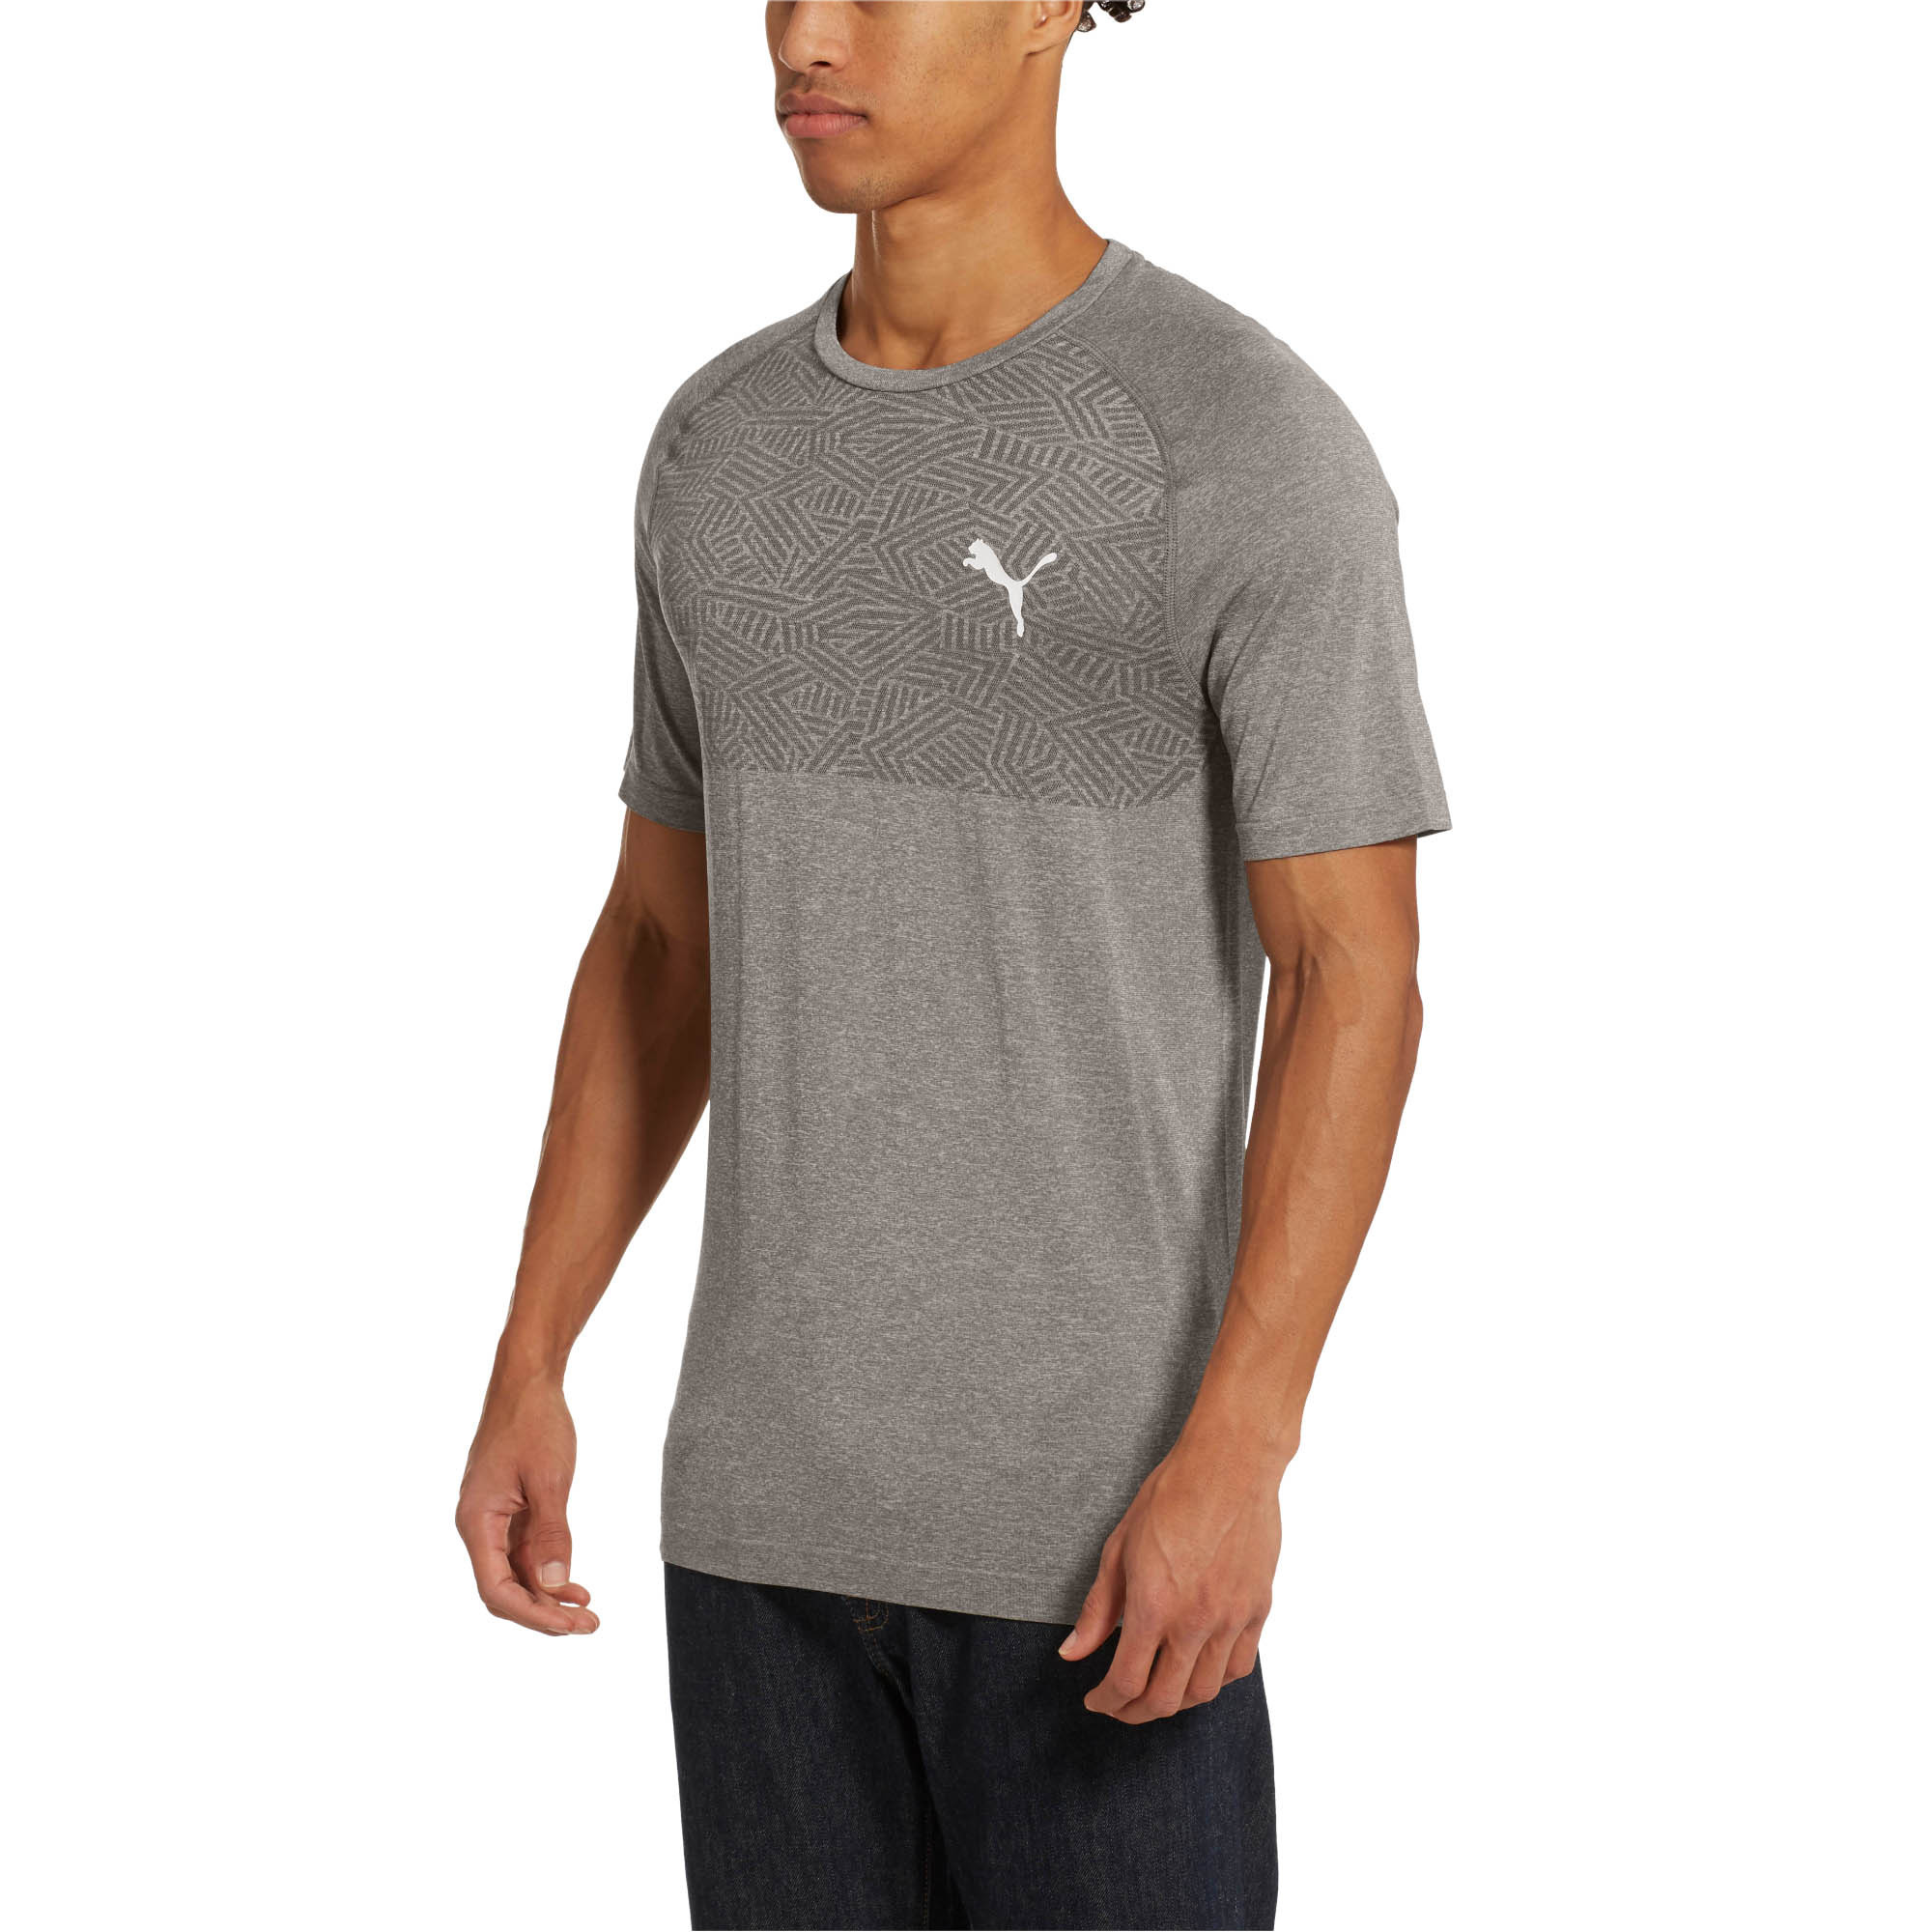 PUMA-Tec-Sports-Men-s-evoKNIT-Tee-Men-Tee-Basics thumbnail 7